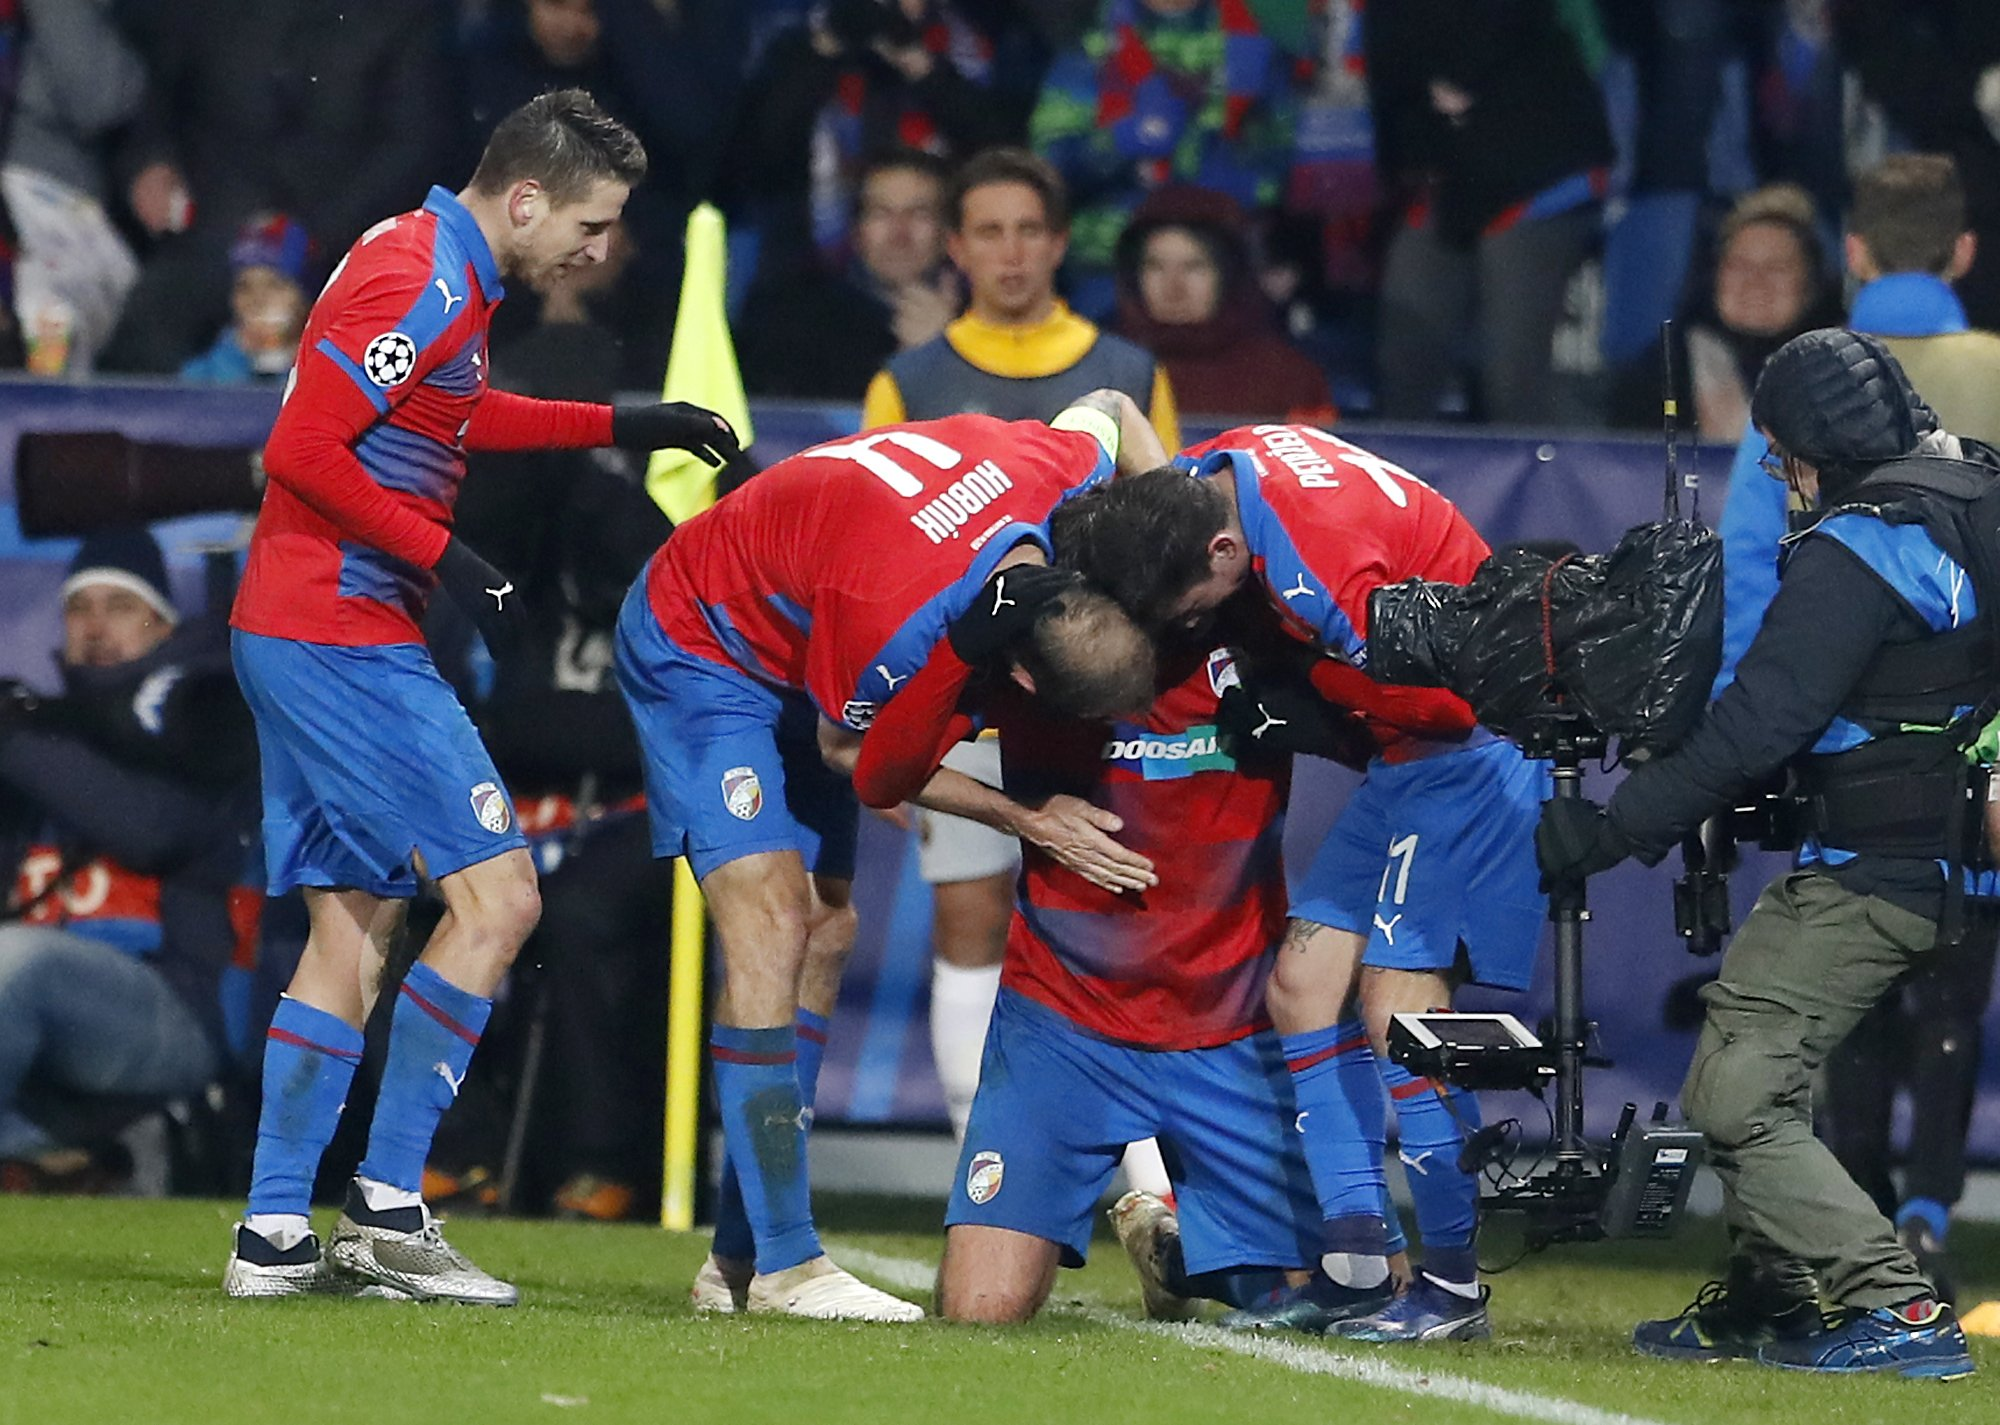 Plzen beats Roma 2-1 to qualify for Europa League